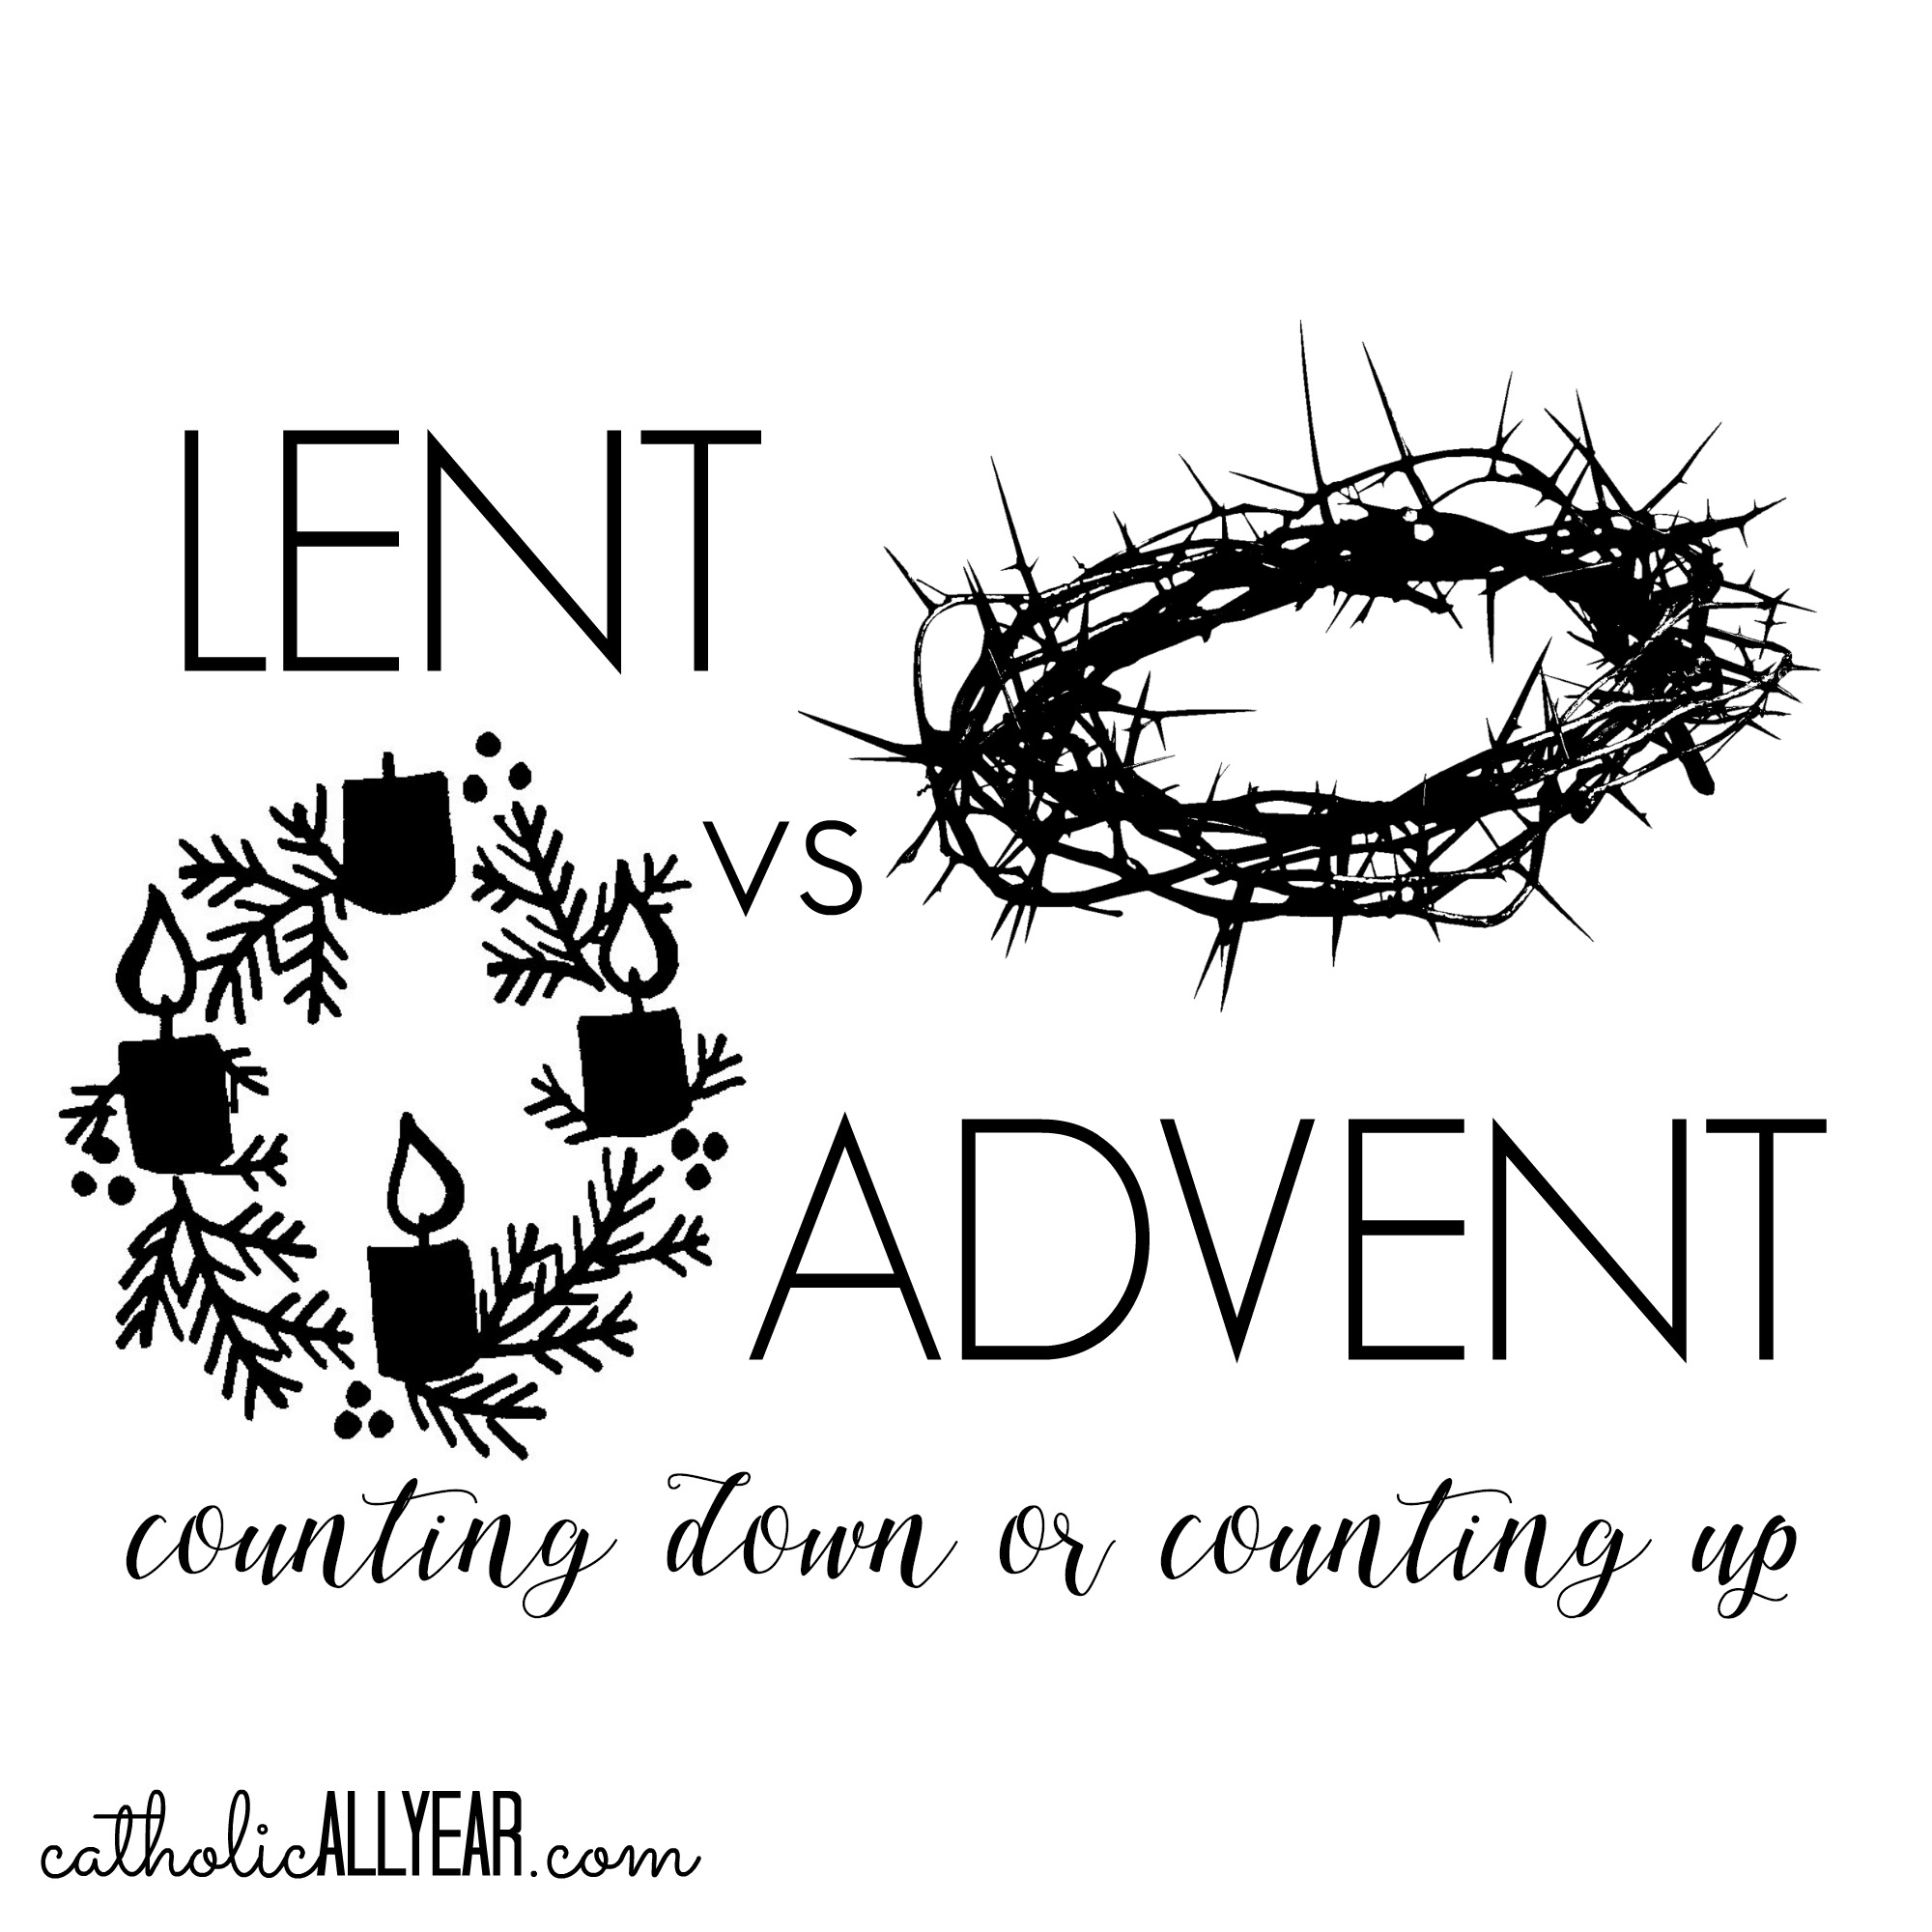 Lent vs Advent: Penance or Preparation, Counting Down or Counting Up